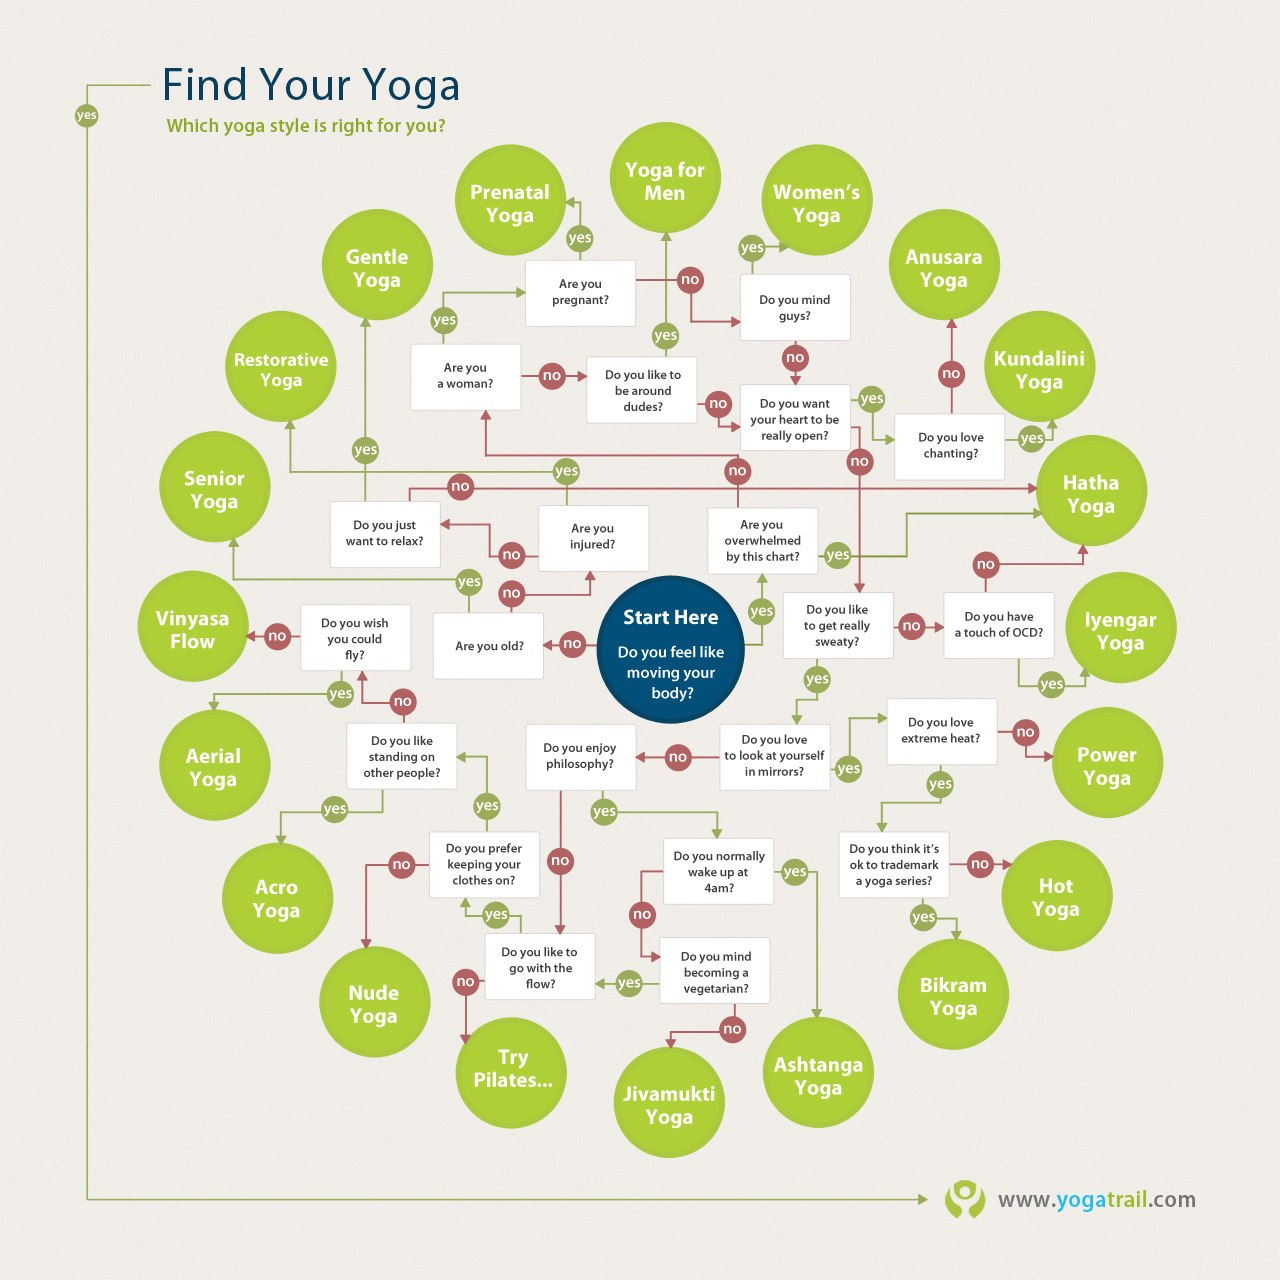 Self Teacher Study – Find Your Yoga